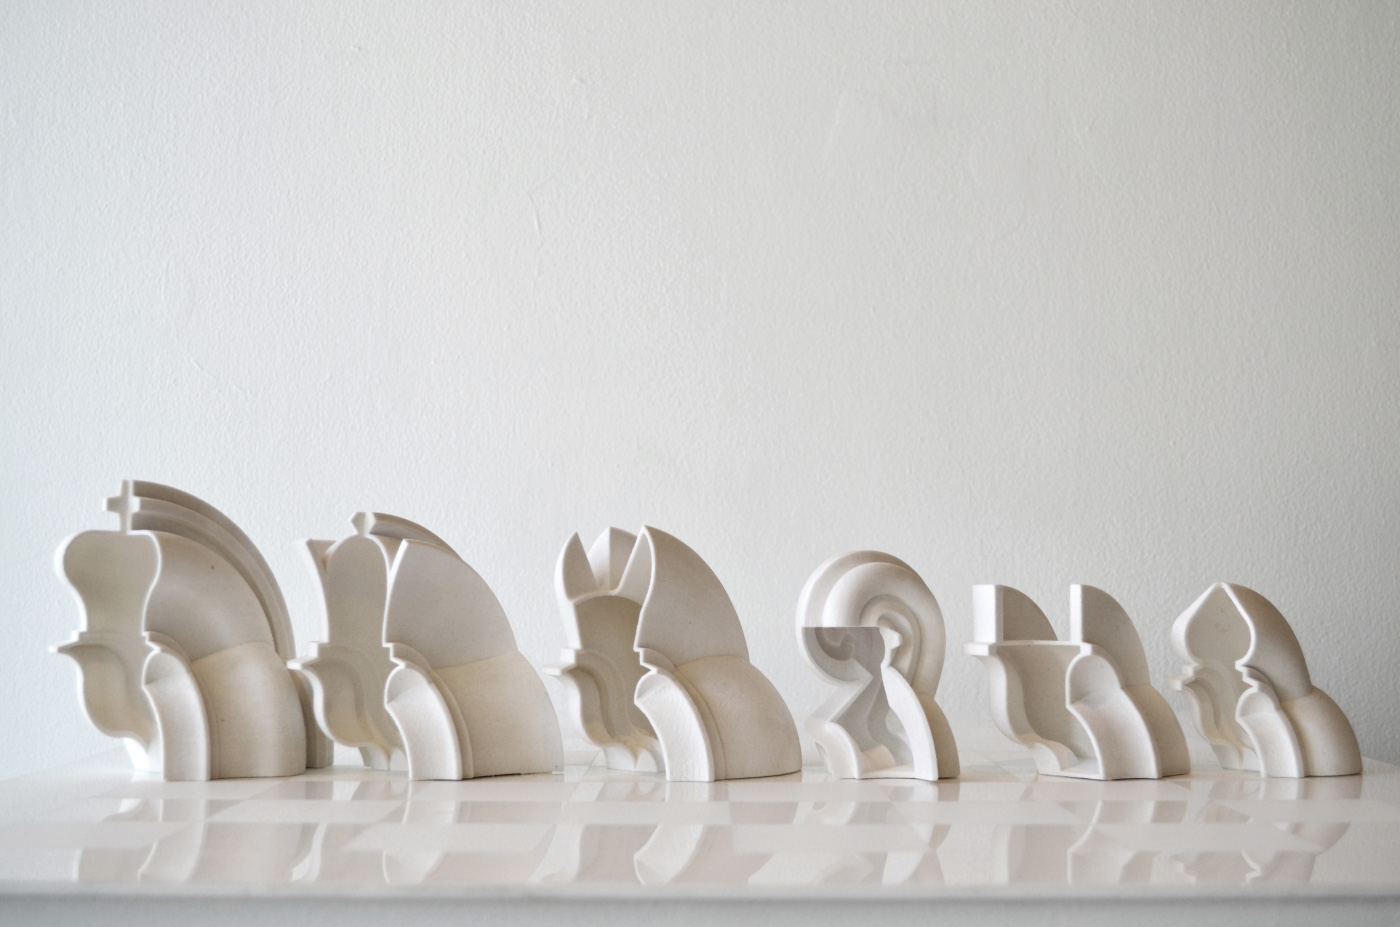 White, highly-designed chess set with curved pieces designed by Spinagu